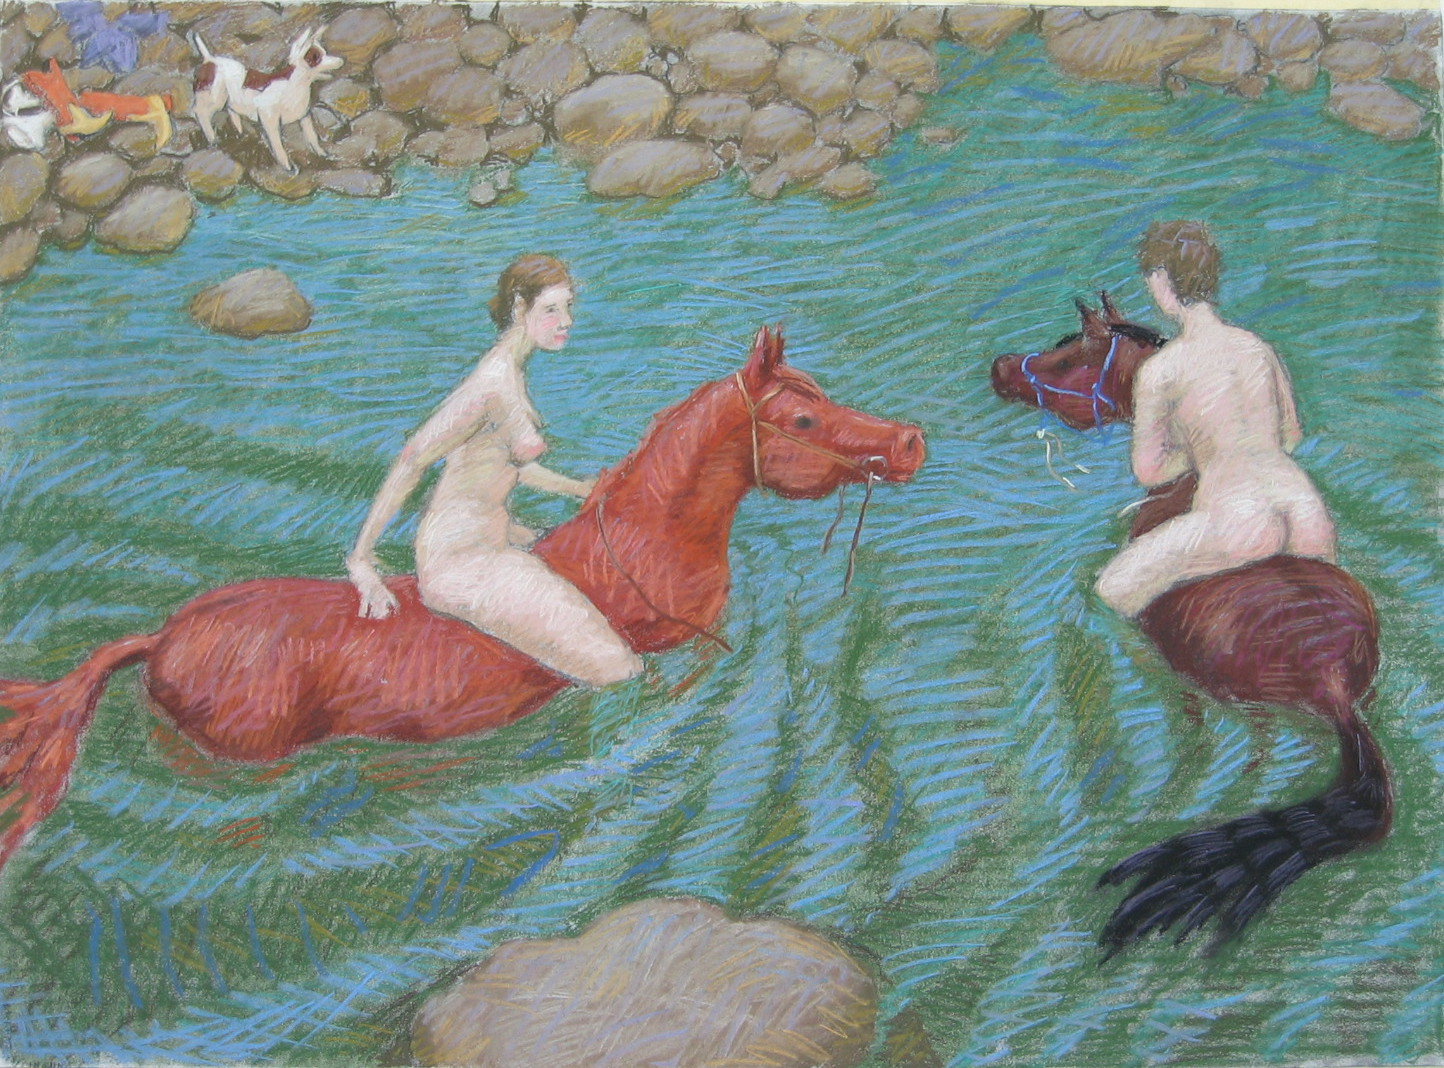 Swimming on the Horse by  Melissa Hefferlin - Masterpiece Online